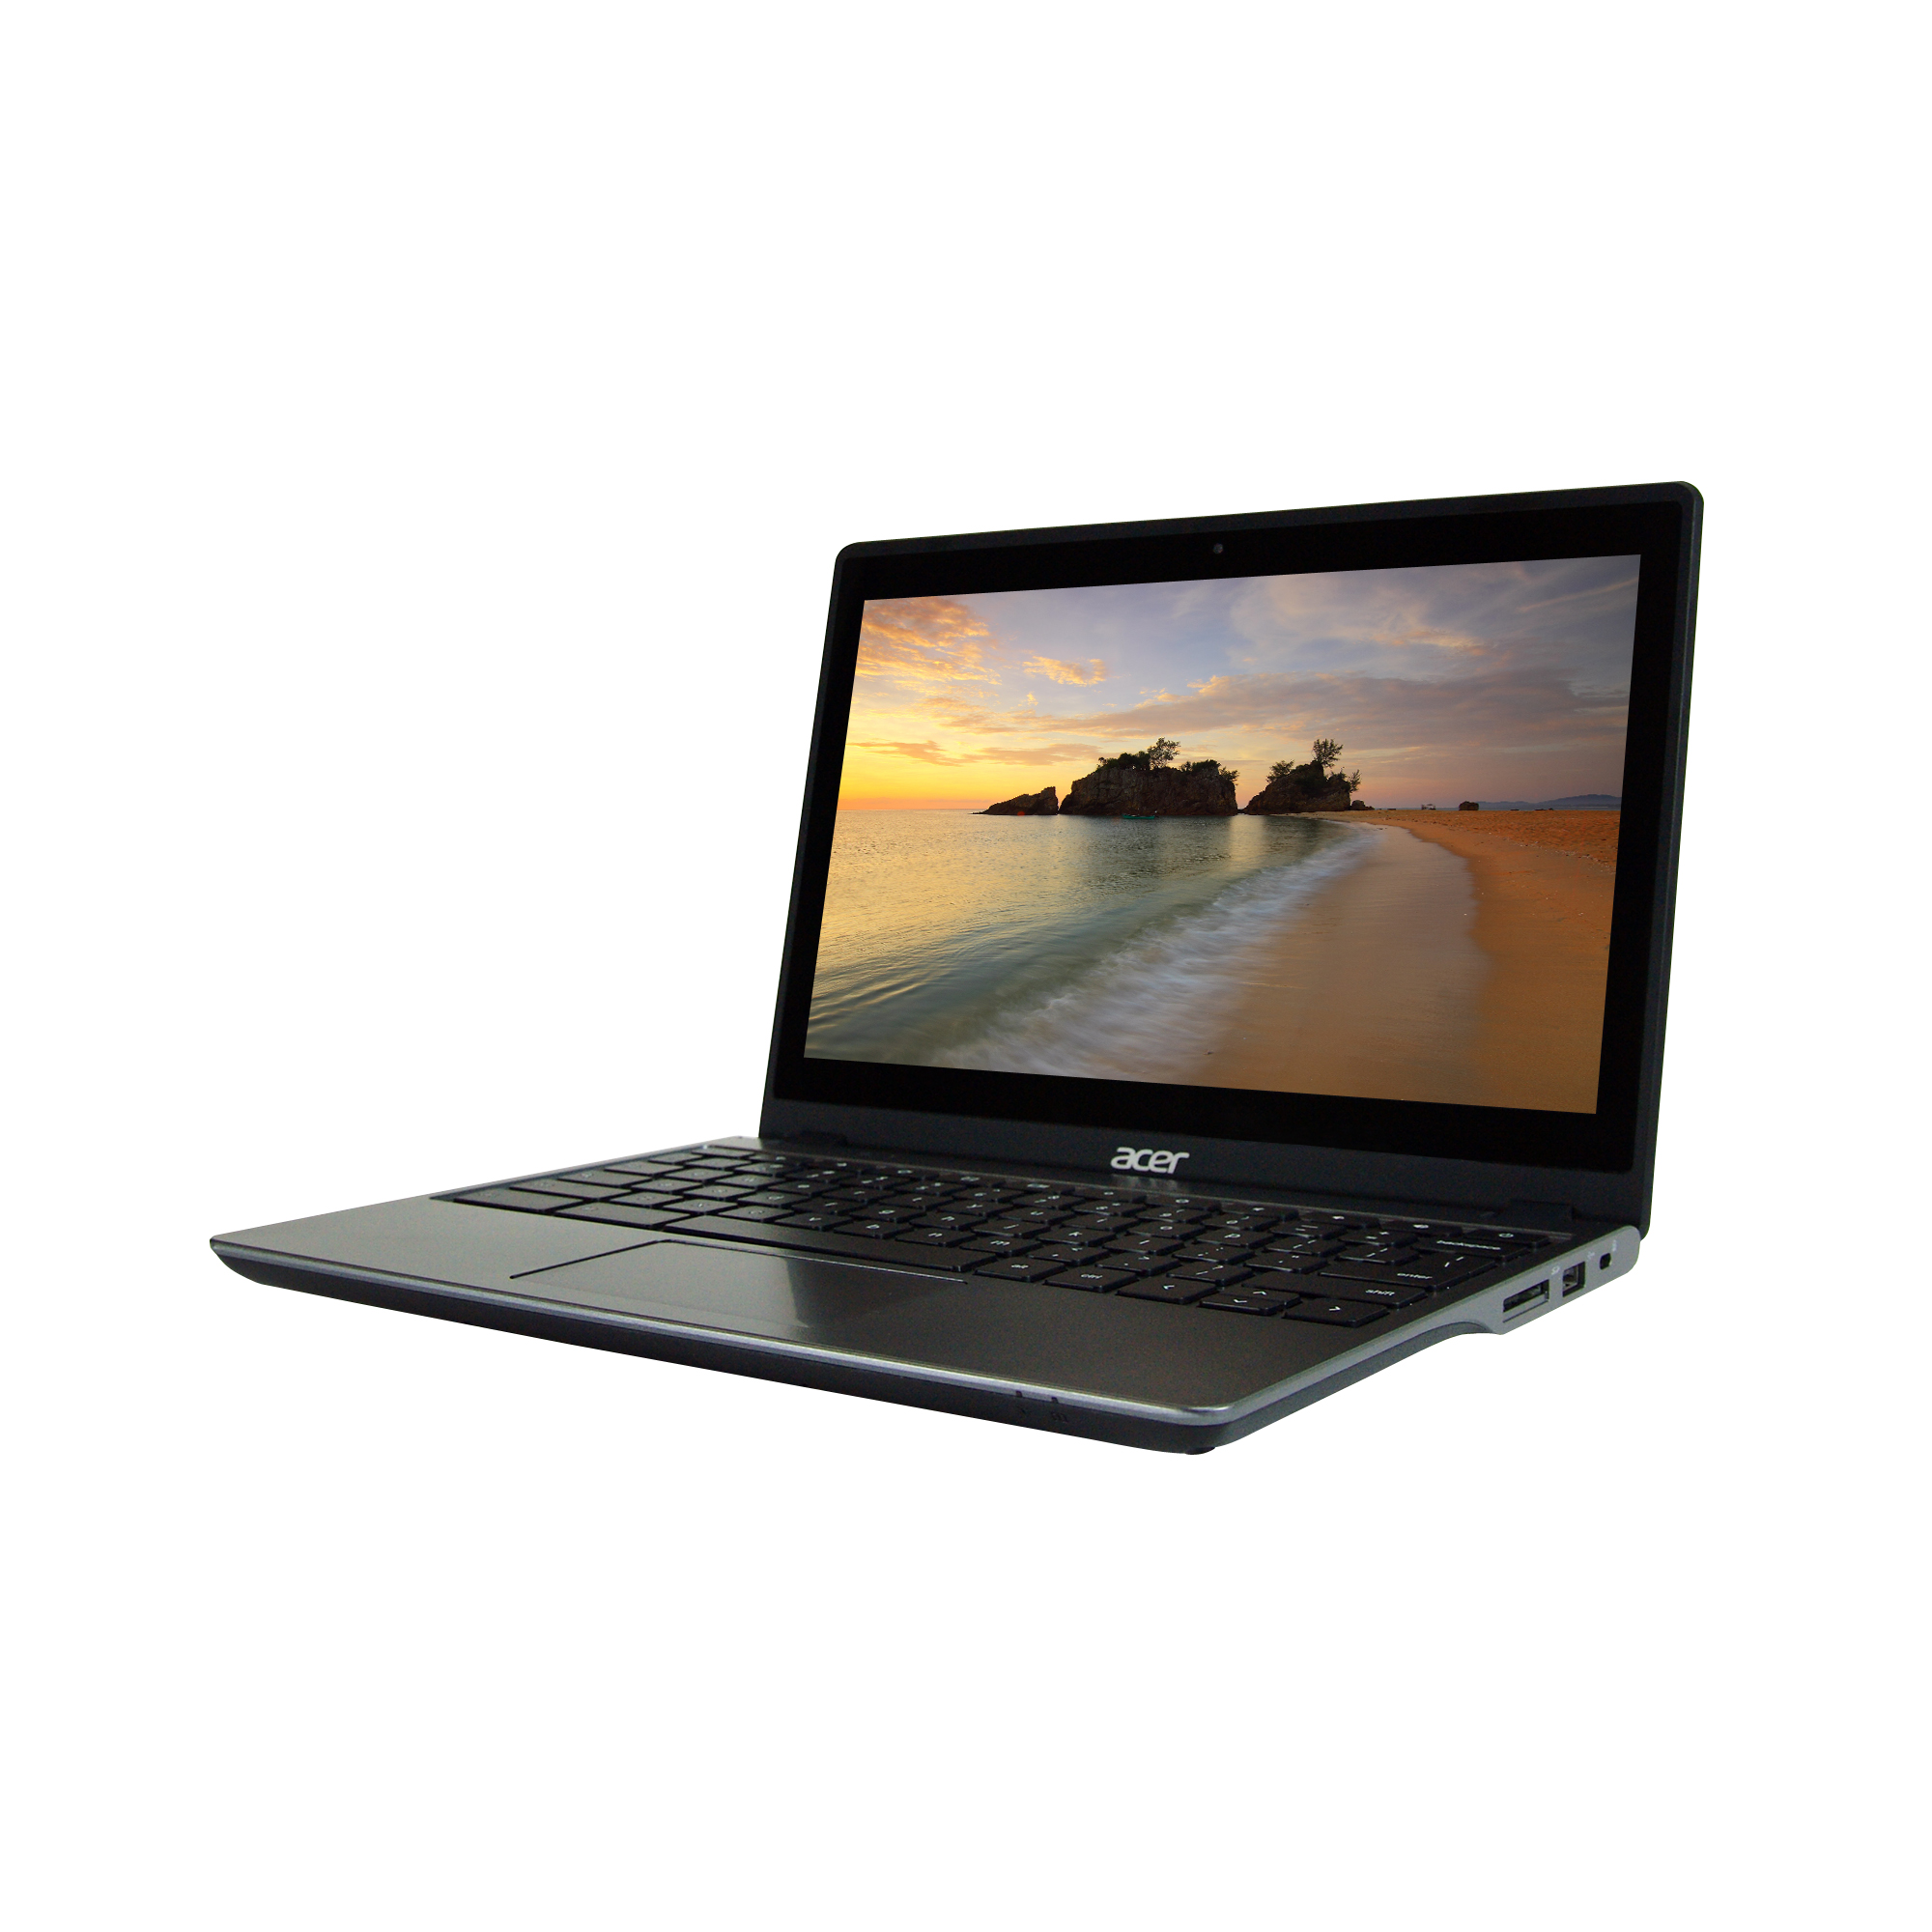 Computer Online Store Computers Pc Laptops Desktops At Every Day Low Price Walmart